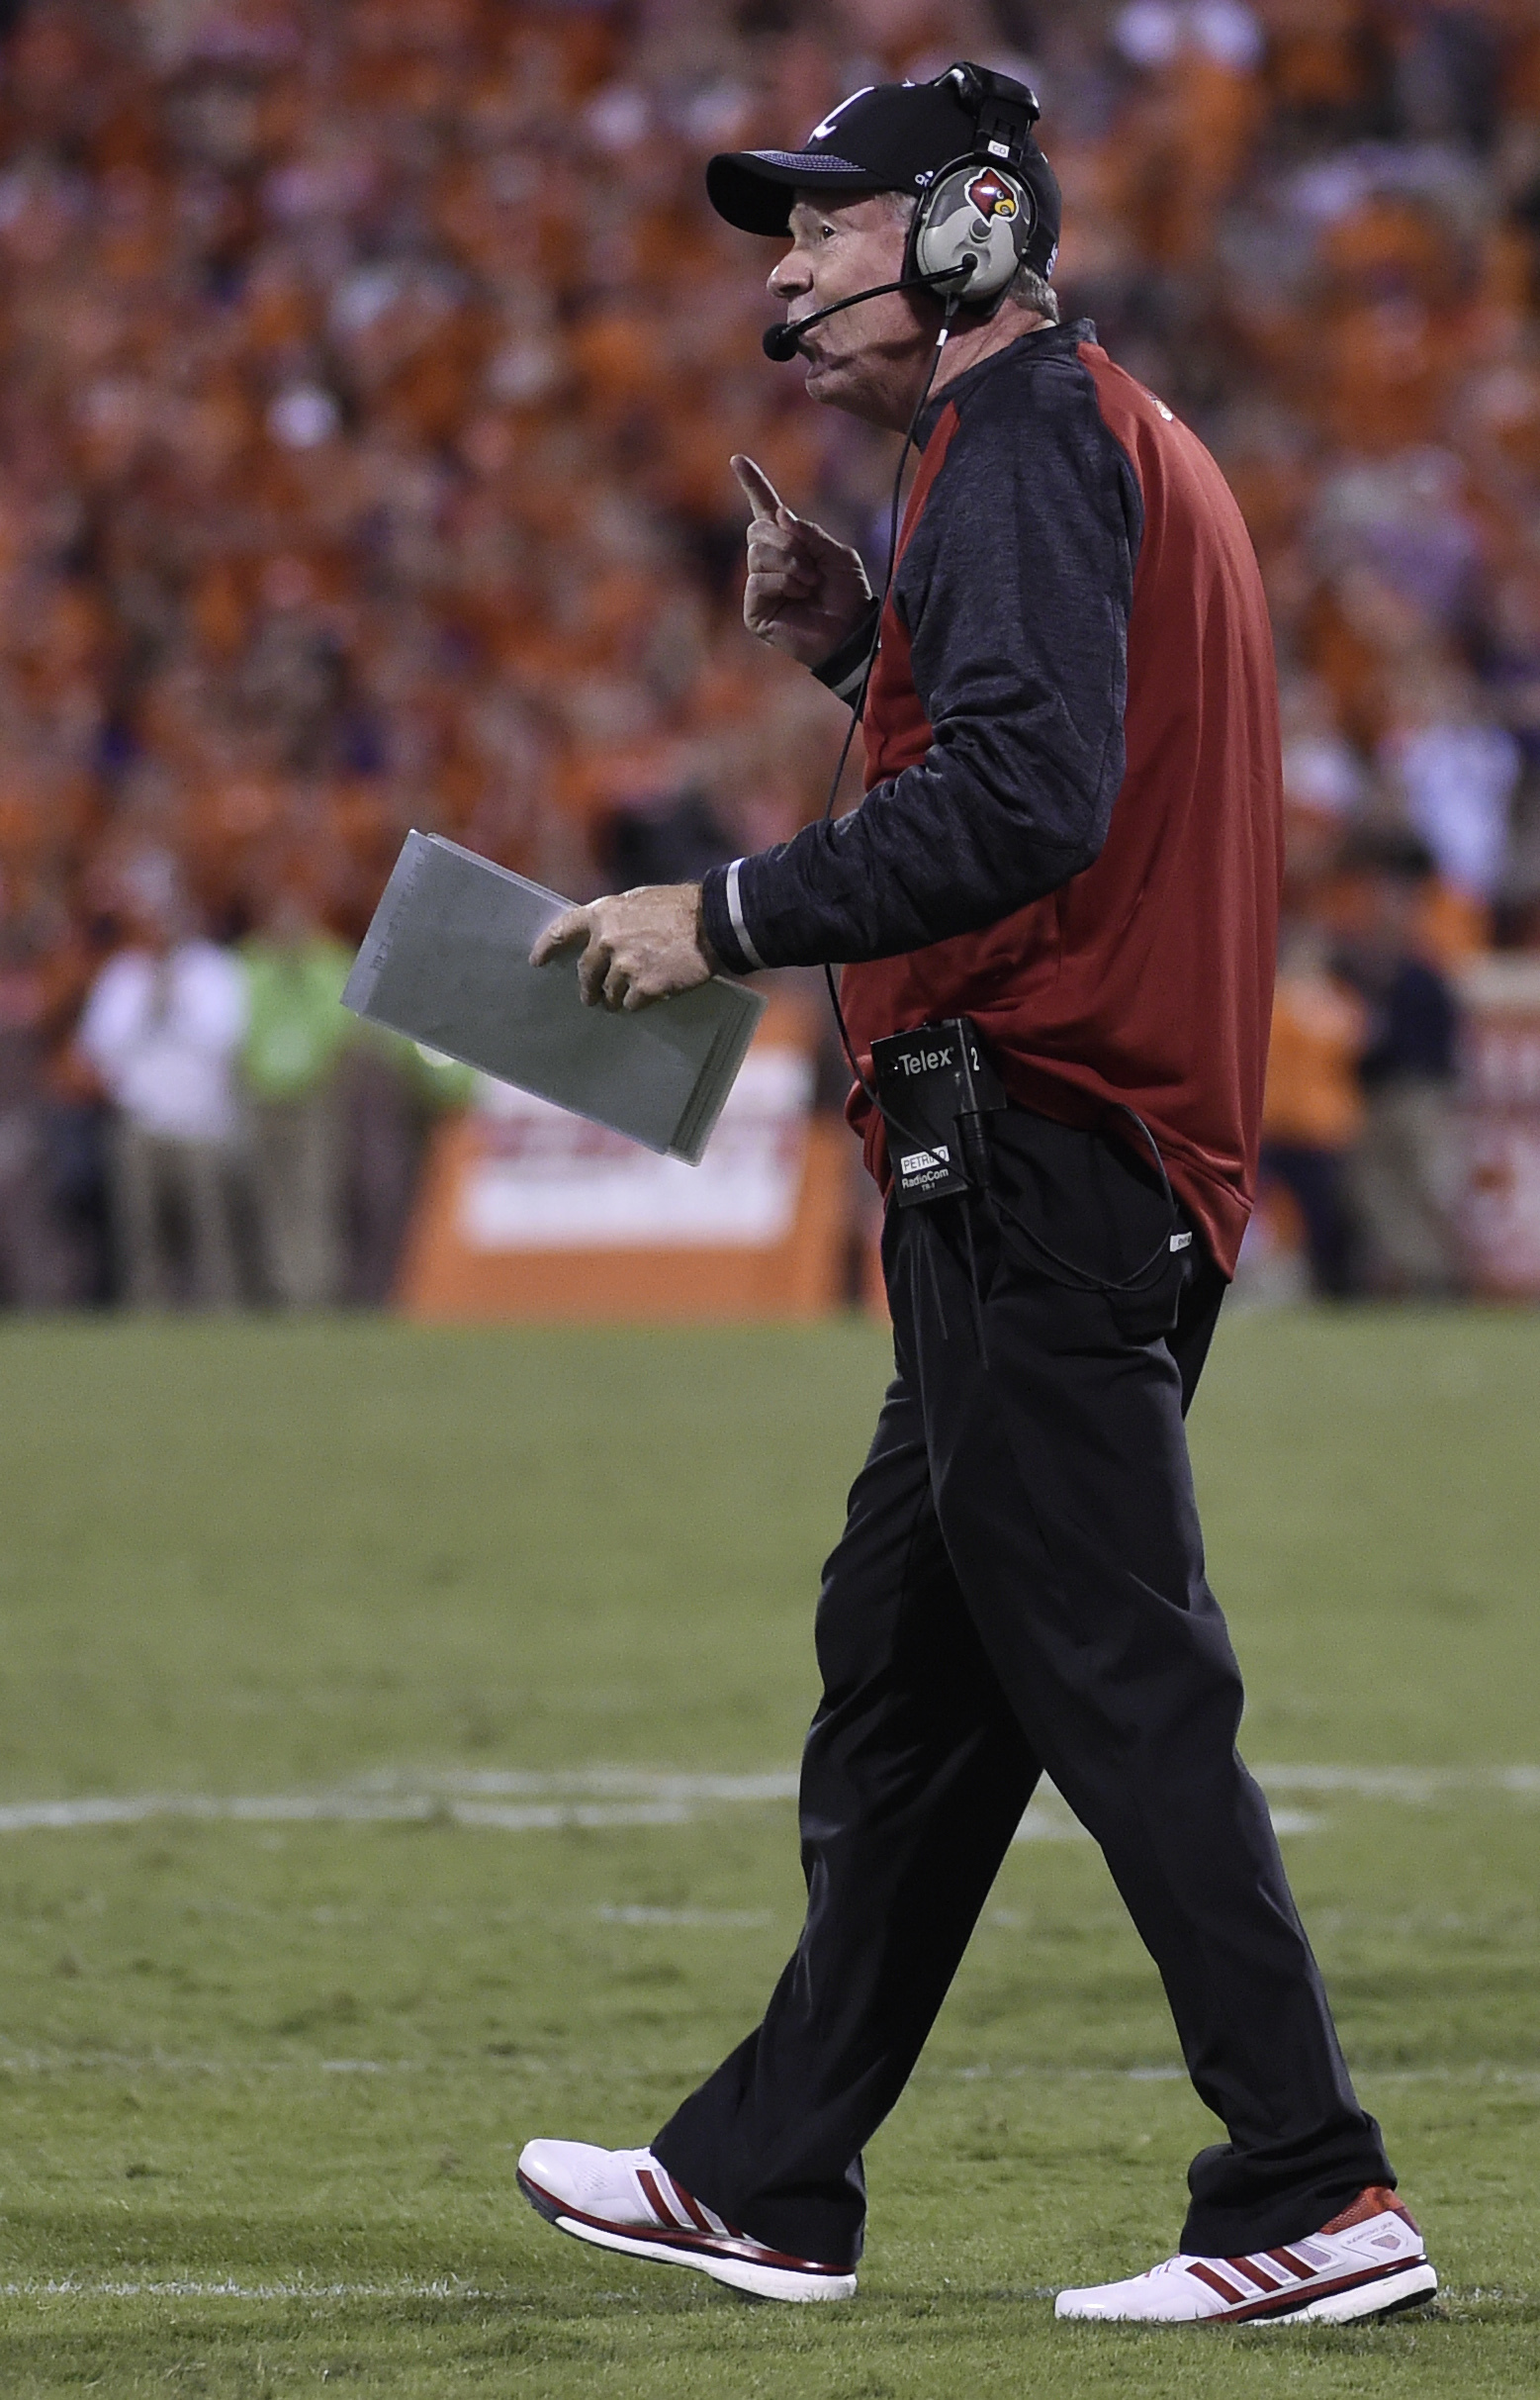 Louisville coach Bobby Petrino gestures from the sideline during the second half of his team's NCAA college football game against Clemson on Saturday, Oct. 1, 2016, in Clemson, S.C. (AP Photo/Rainier Ehrhardt)